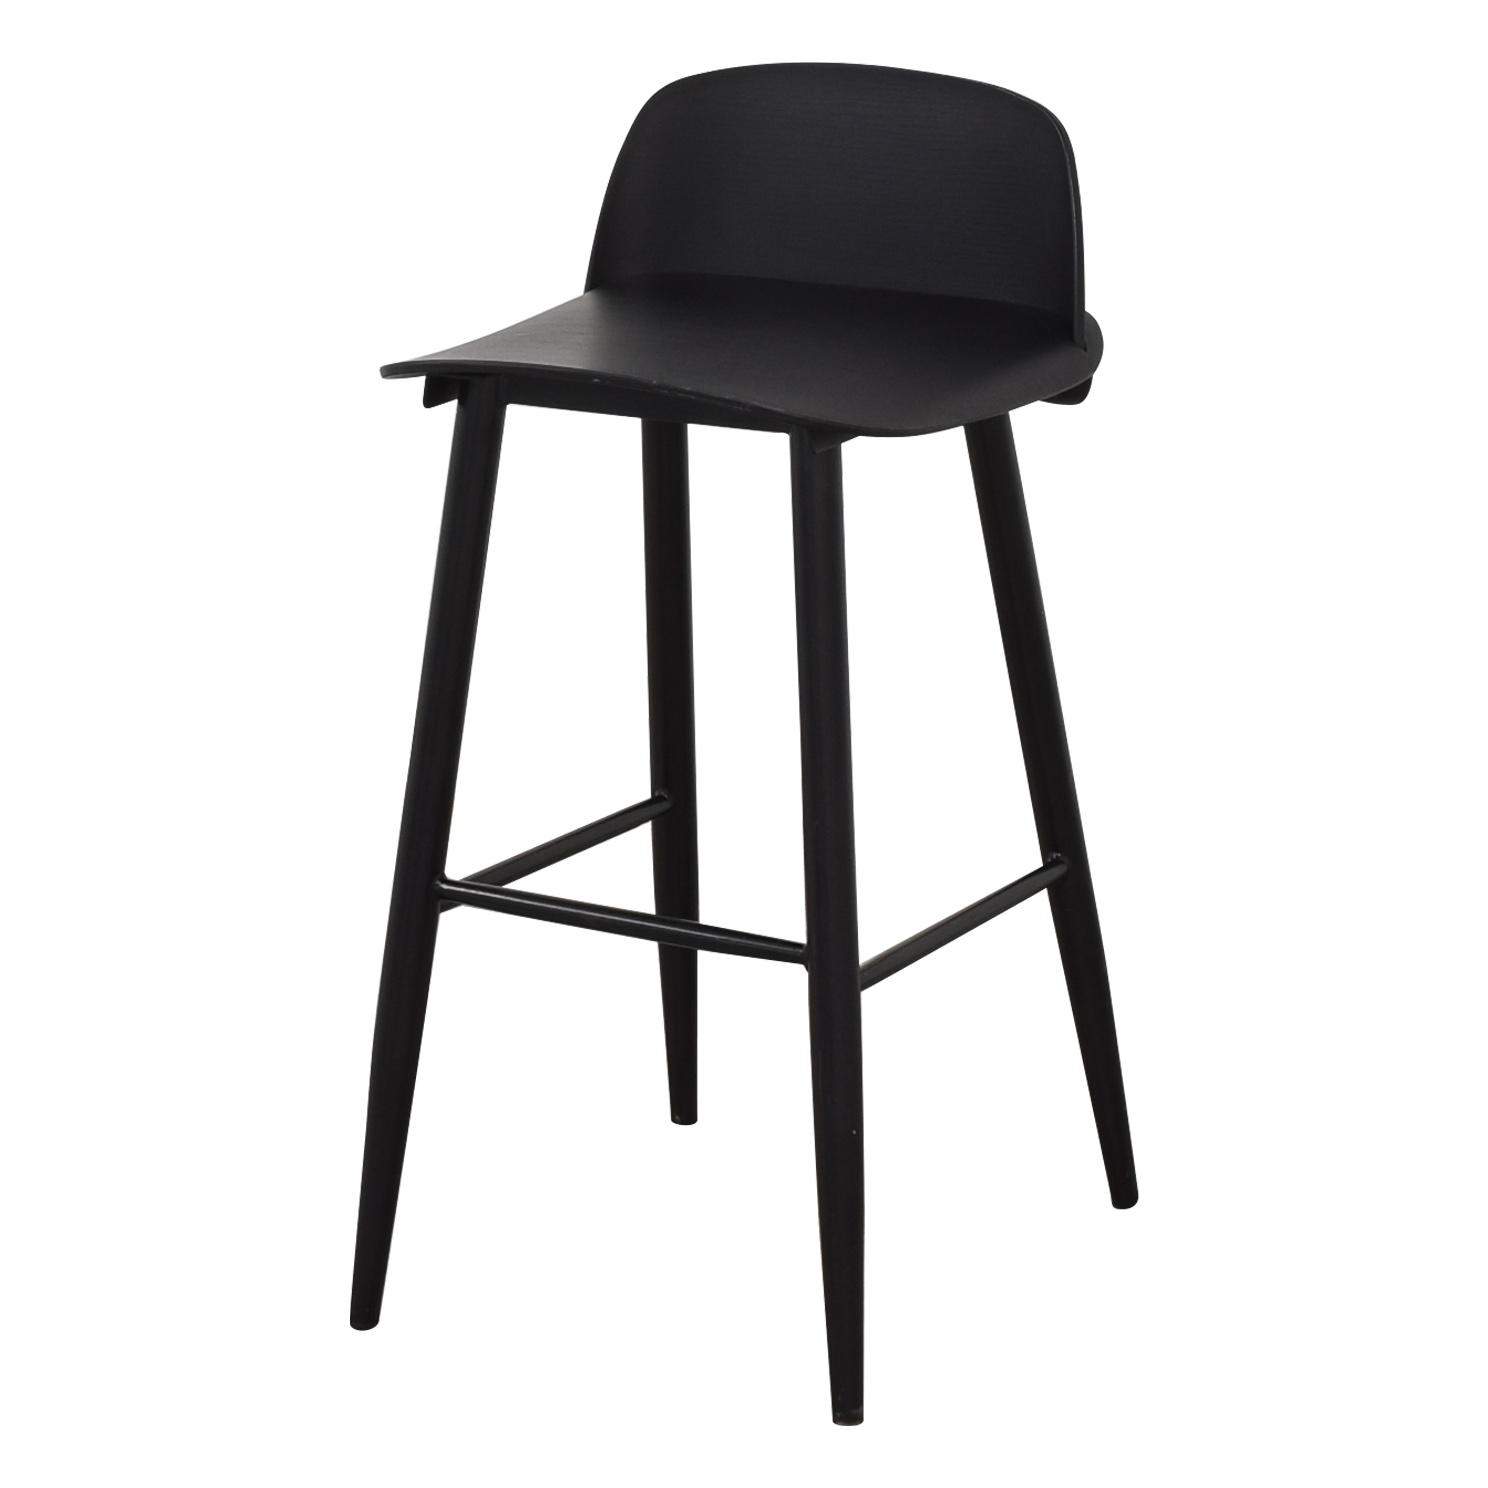 shop Nerd-Style Replica Bar Stools  Chairs